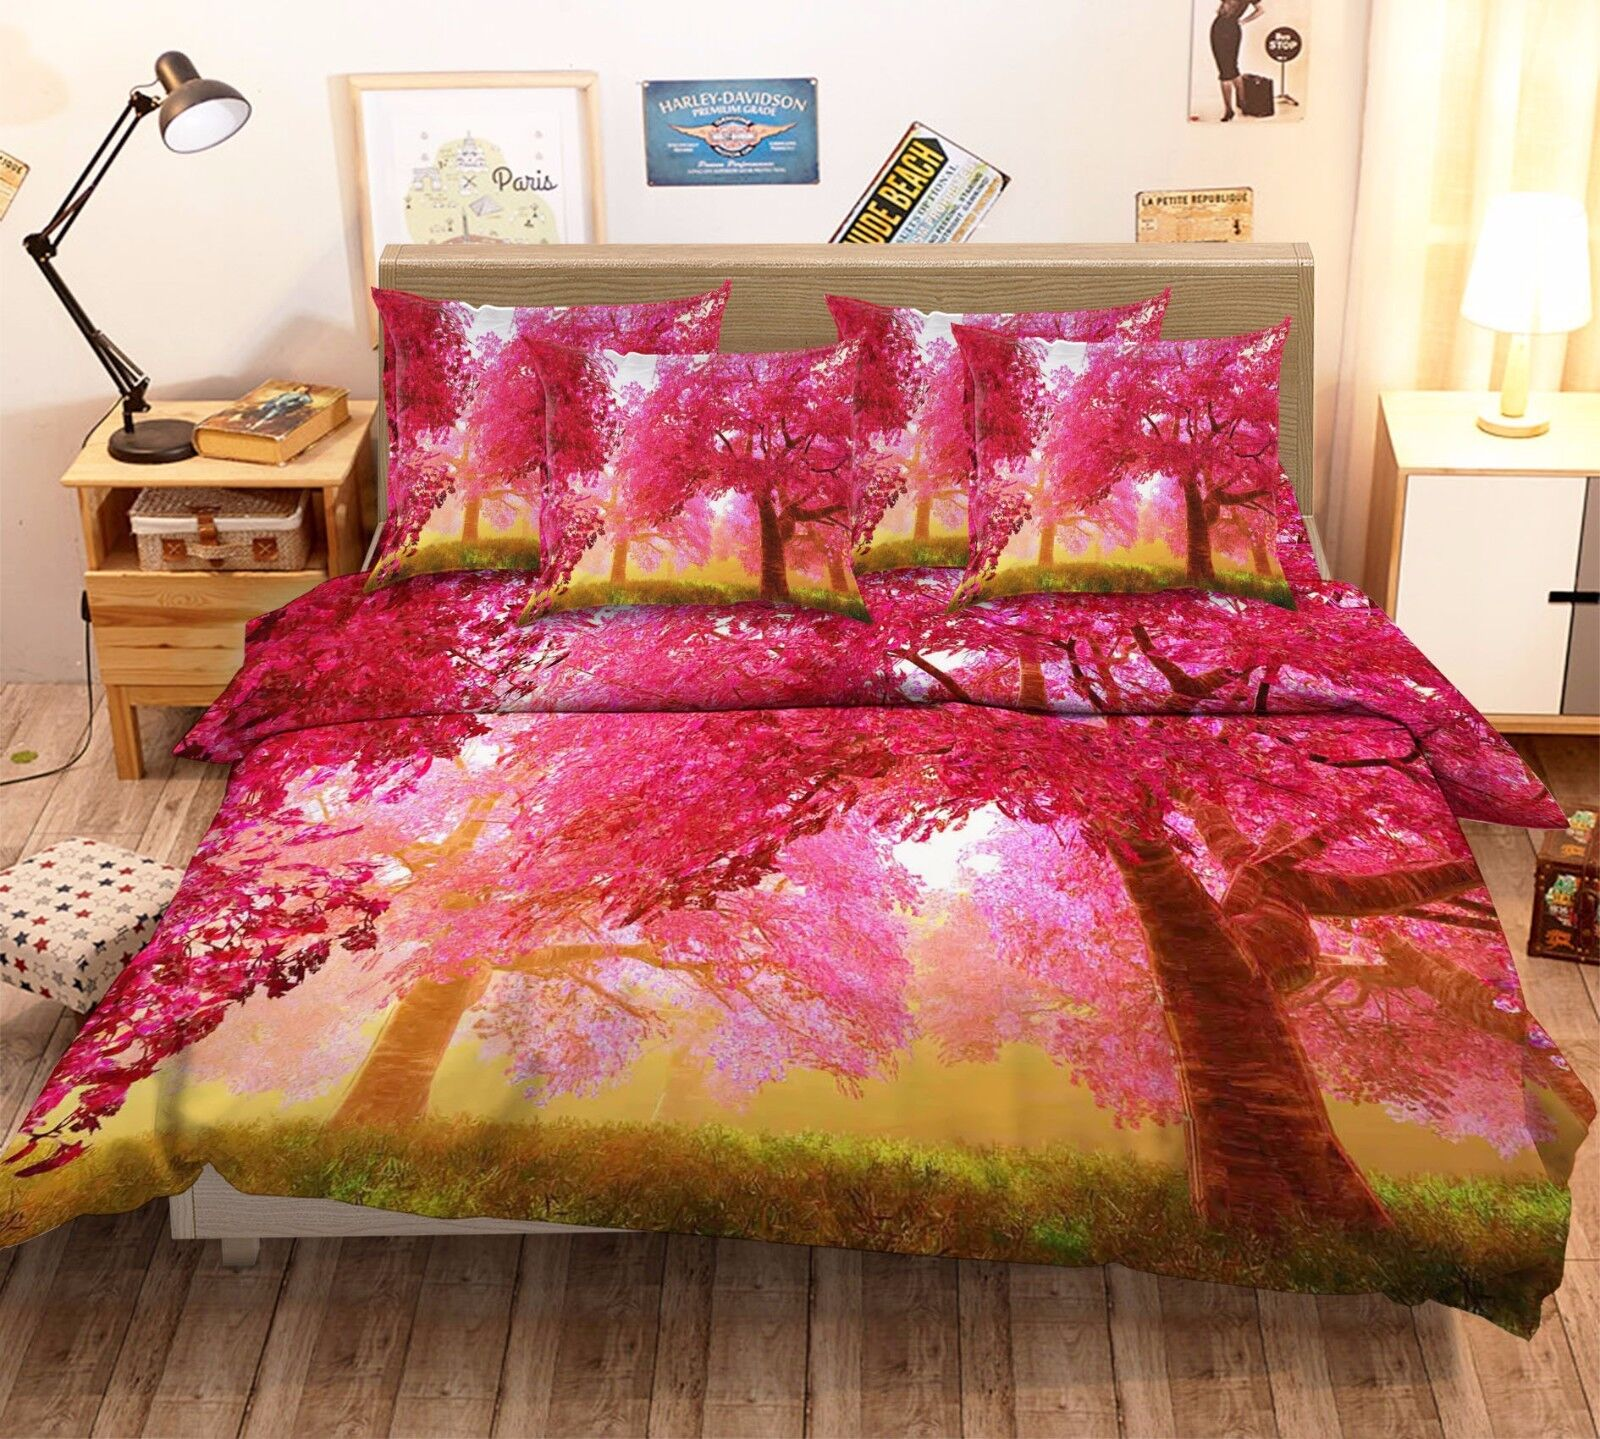 3D Purple Tree 5 Bed Pillowcases Quilt Duvet Cover Set Single Queen King AU Kyra